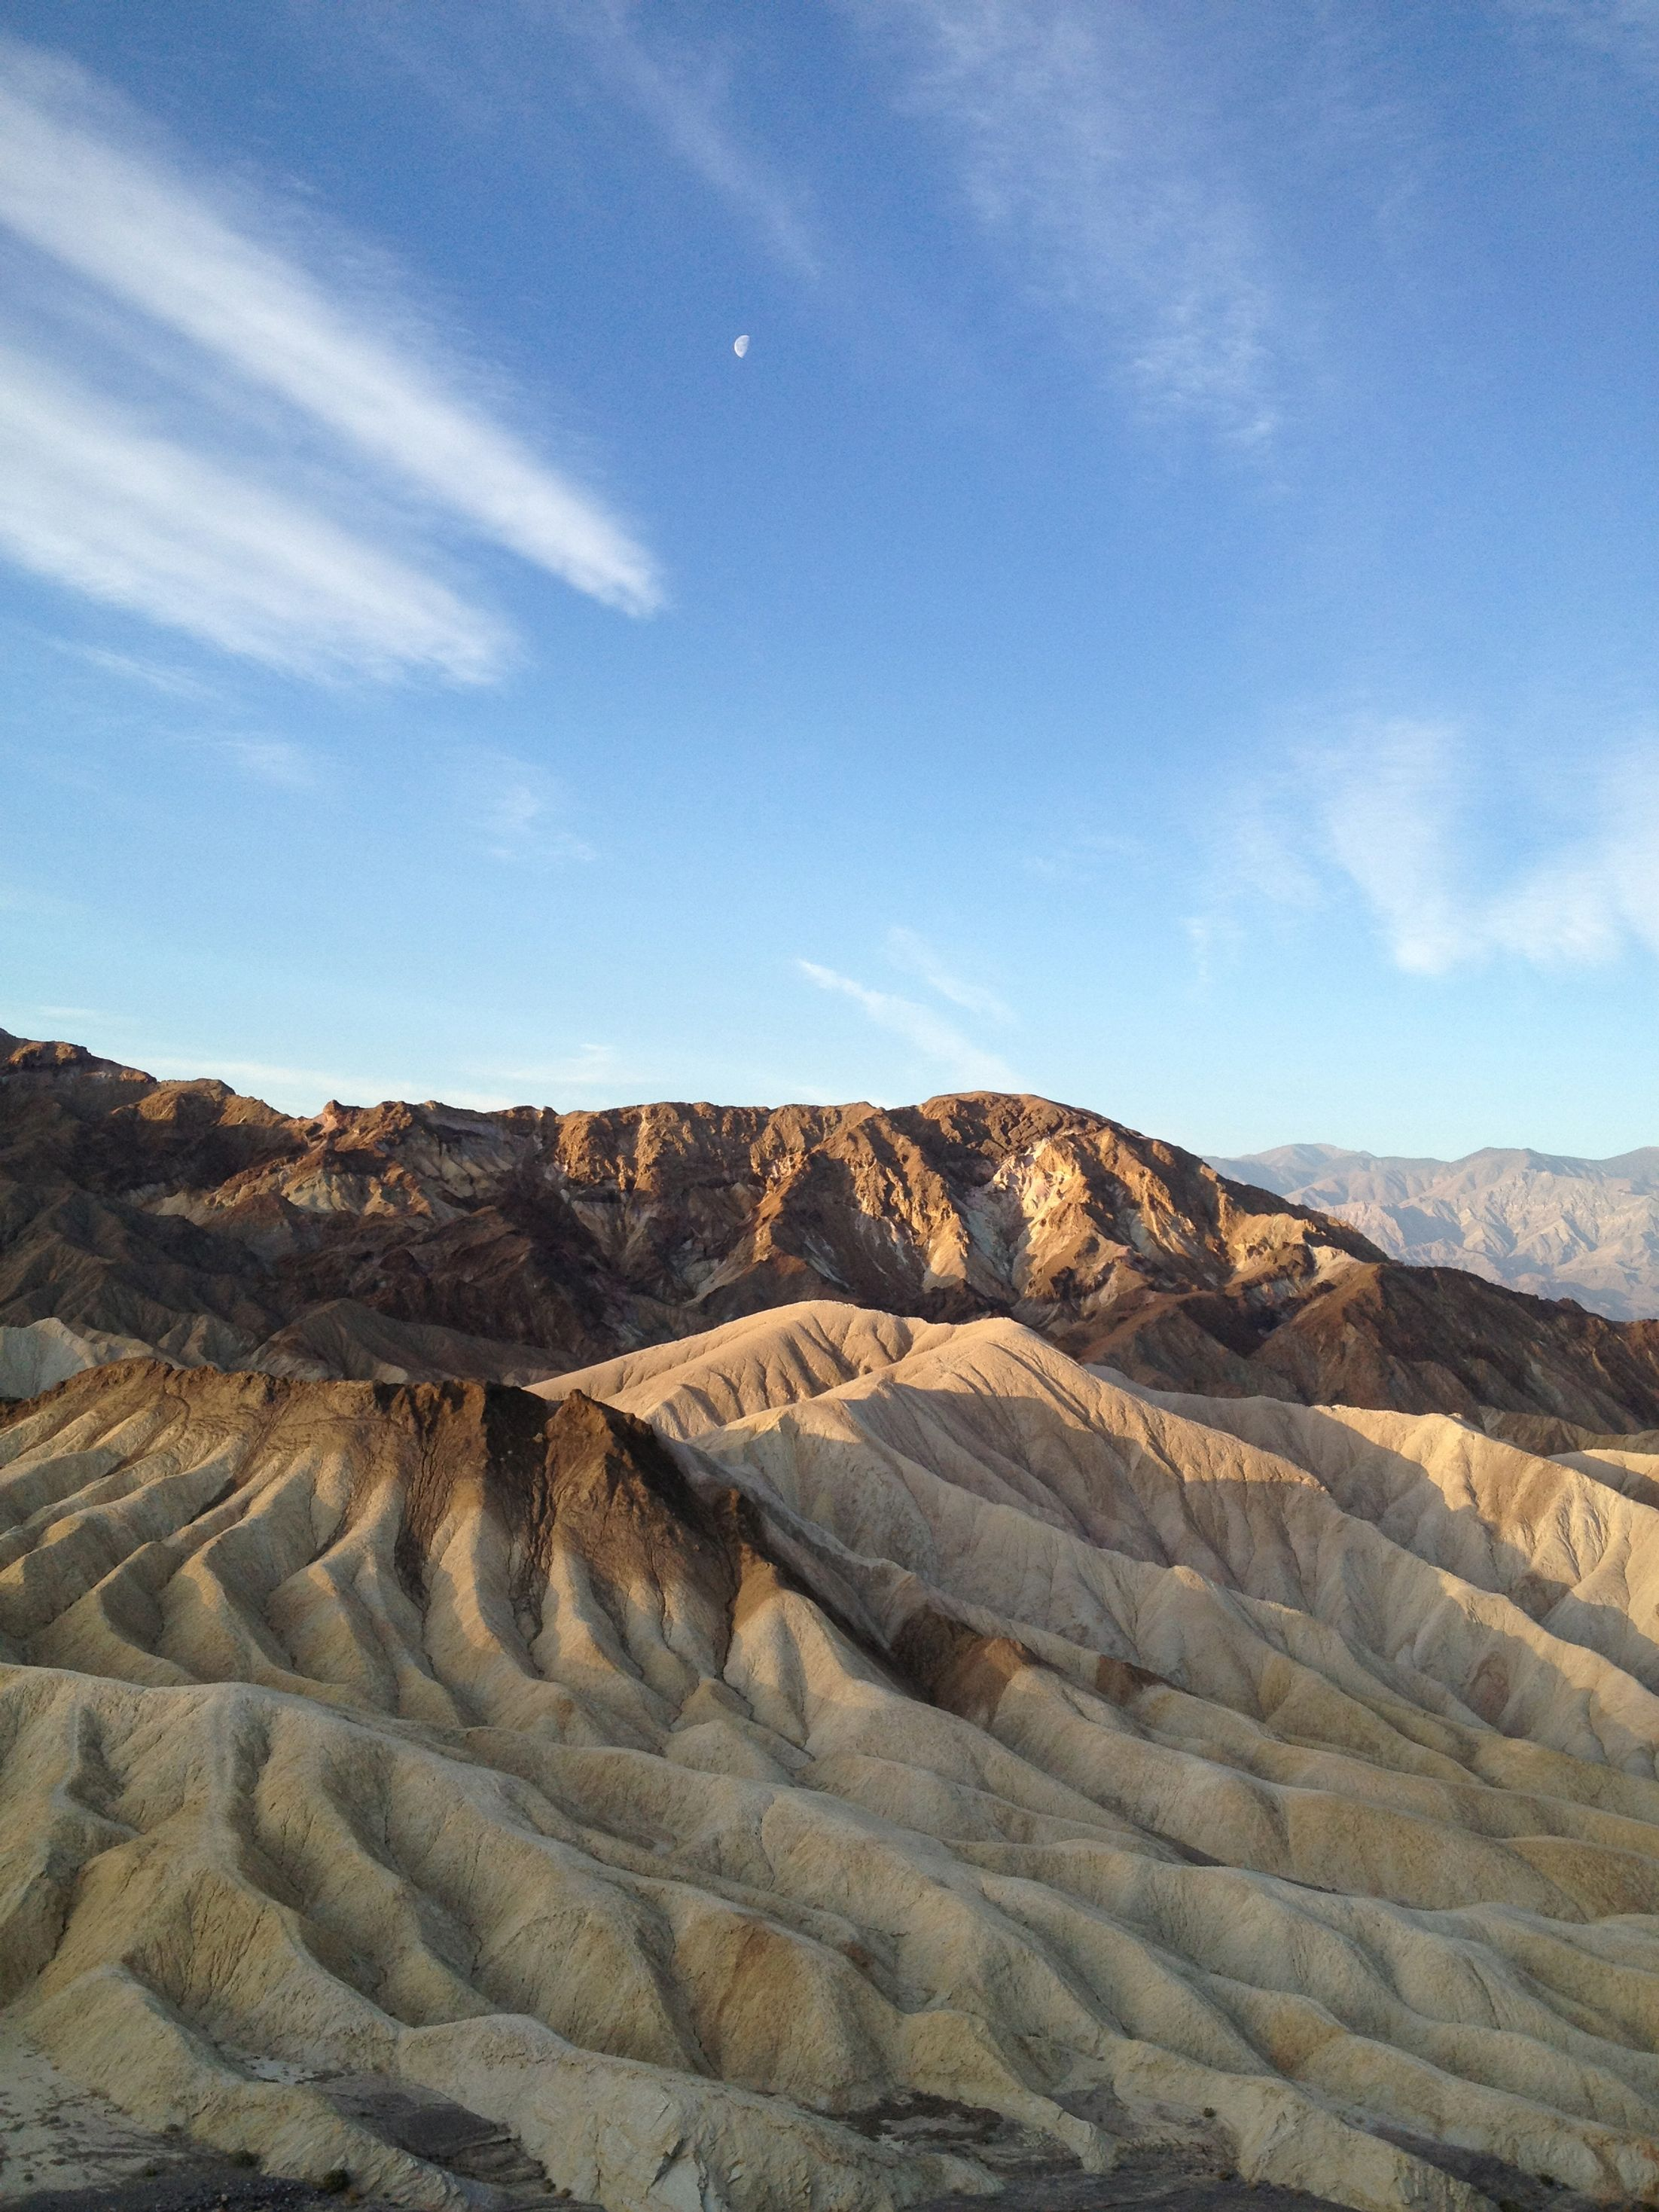 Death Valley National Park photo by kirstiscott / Frommer's Cover Photo Contest 2012 http://frm.rs/ejDojq